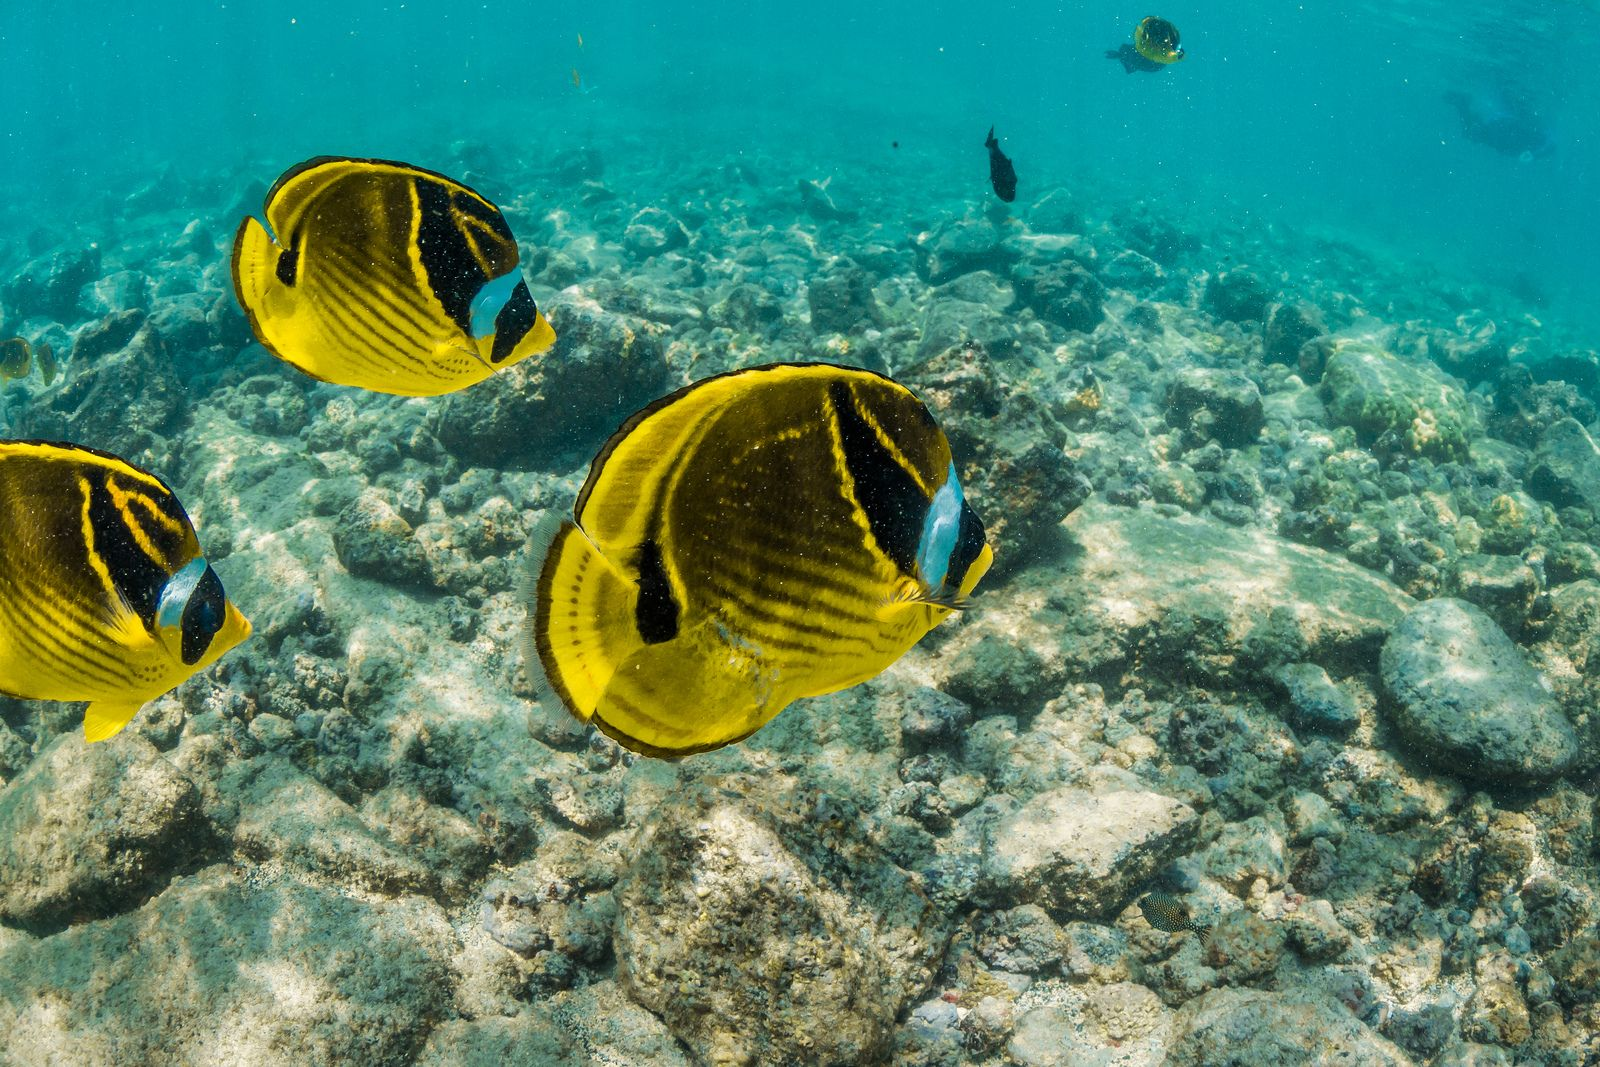 School of Raccoon Butterflyfish along Coral Reef off Big Island of Hawaii | por Lee Rentz